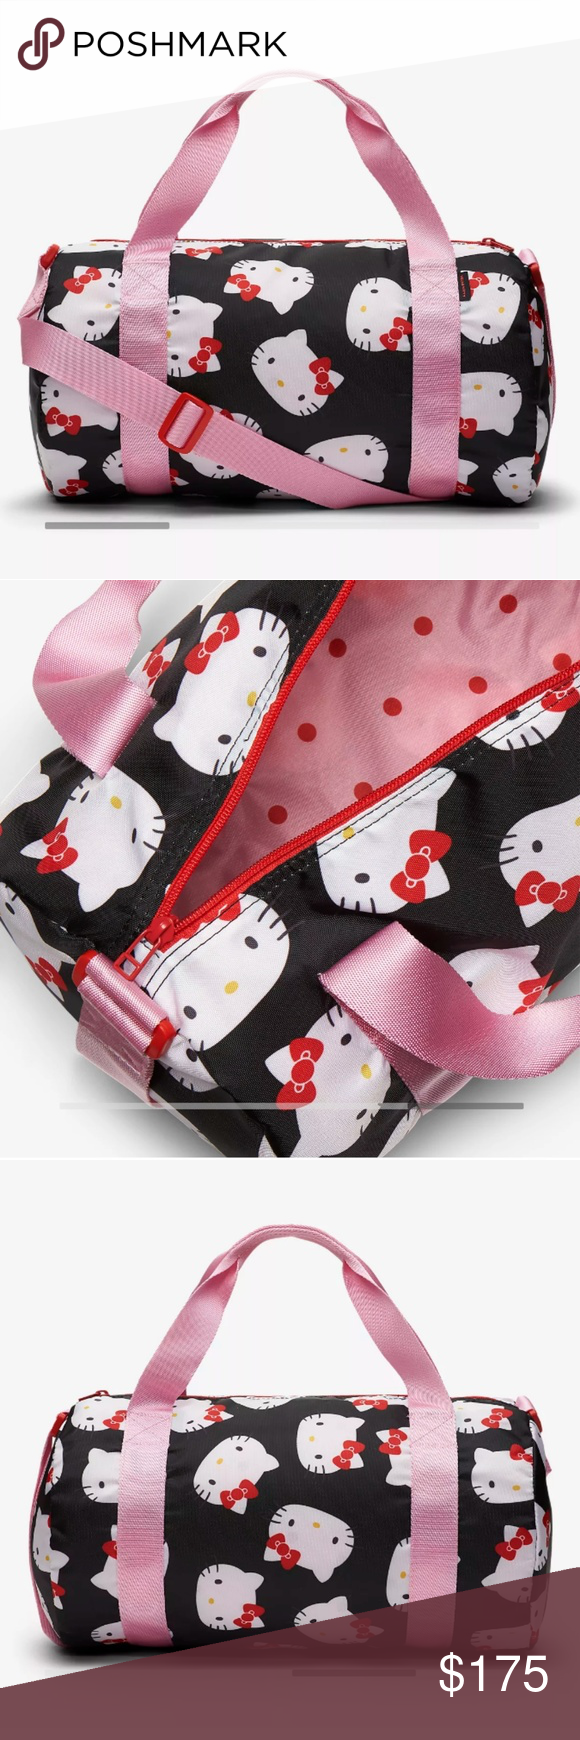 Limited Edition Converse x Hello Kitty duffle bag Give your prized  possessions a happy home. The Converse x Hello Kitty mini duffel bag is  printed with a ... 1e1254ffae2be